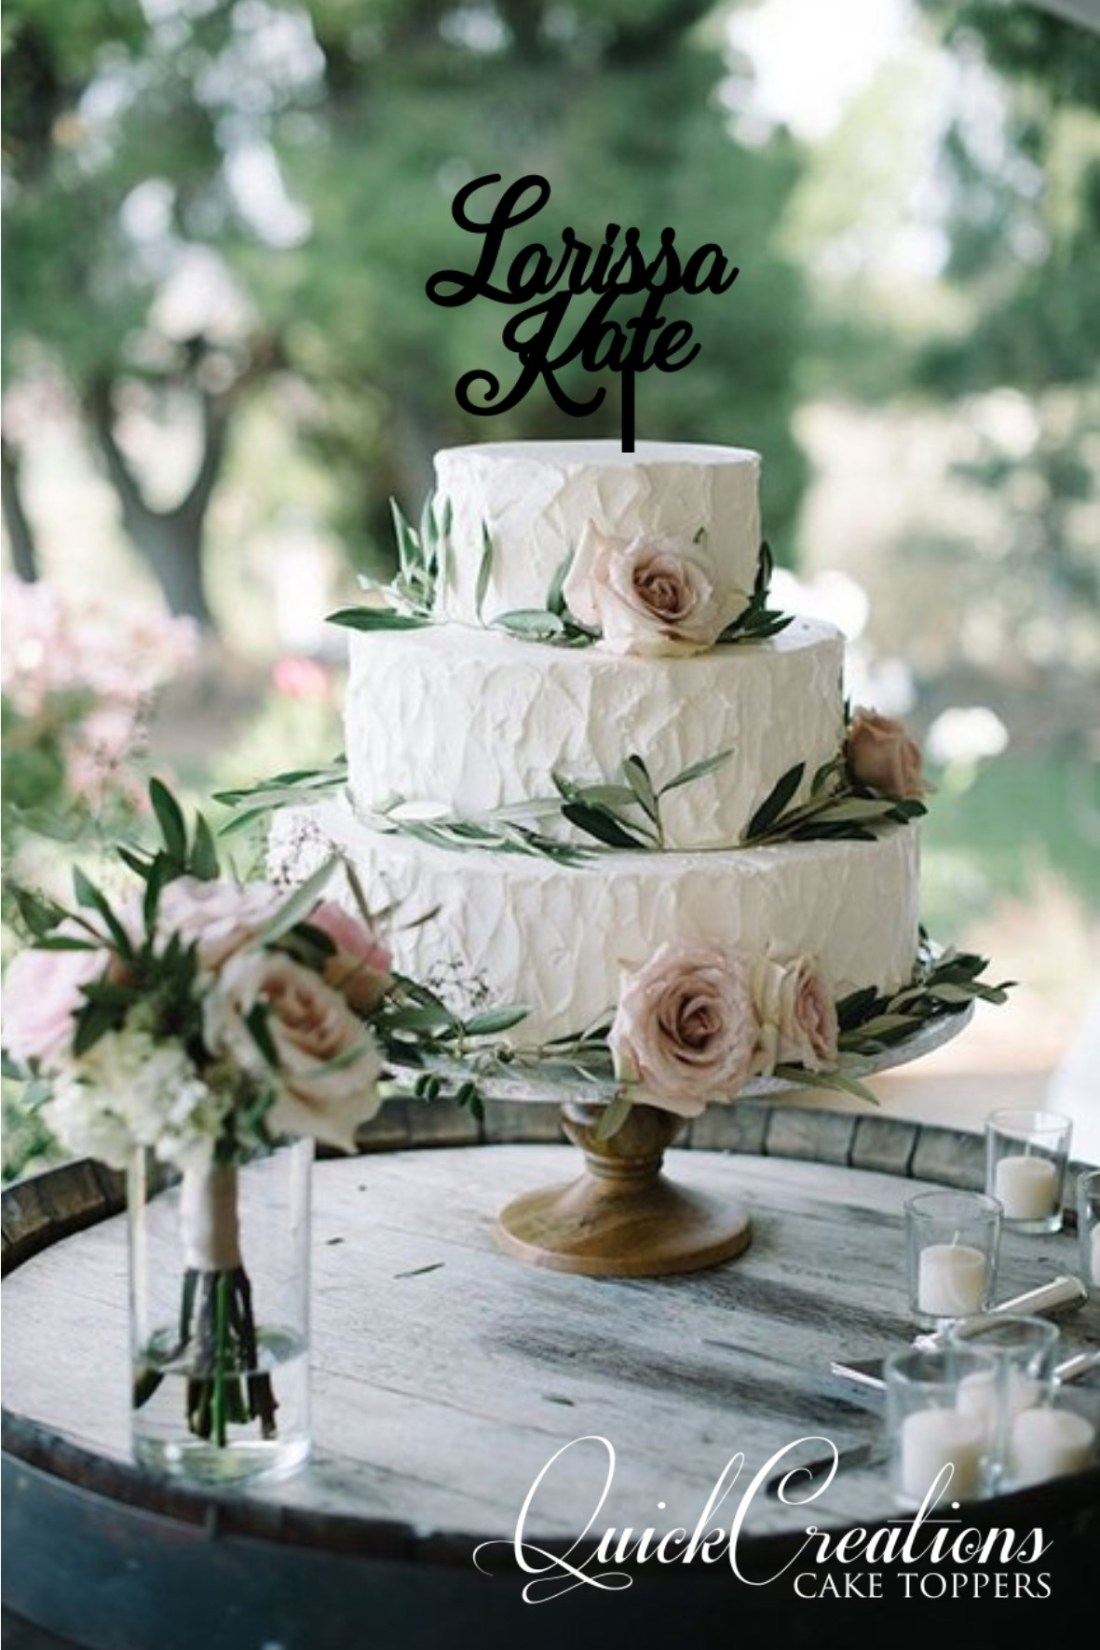 Quick Creations Cake Topper - Larissa Kate